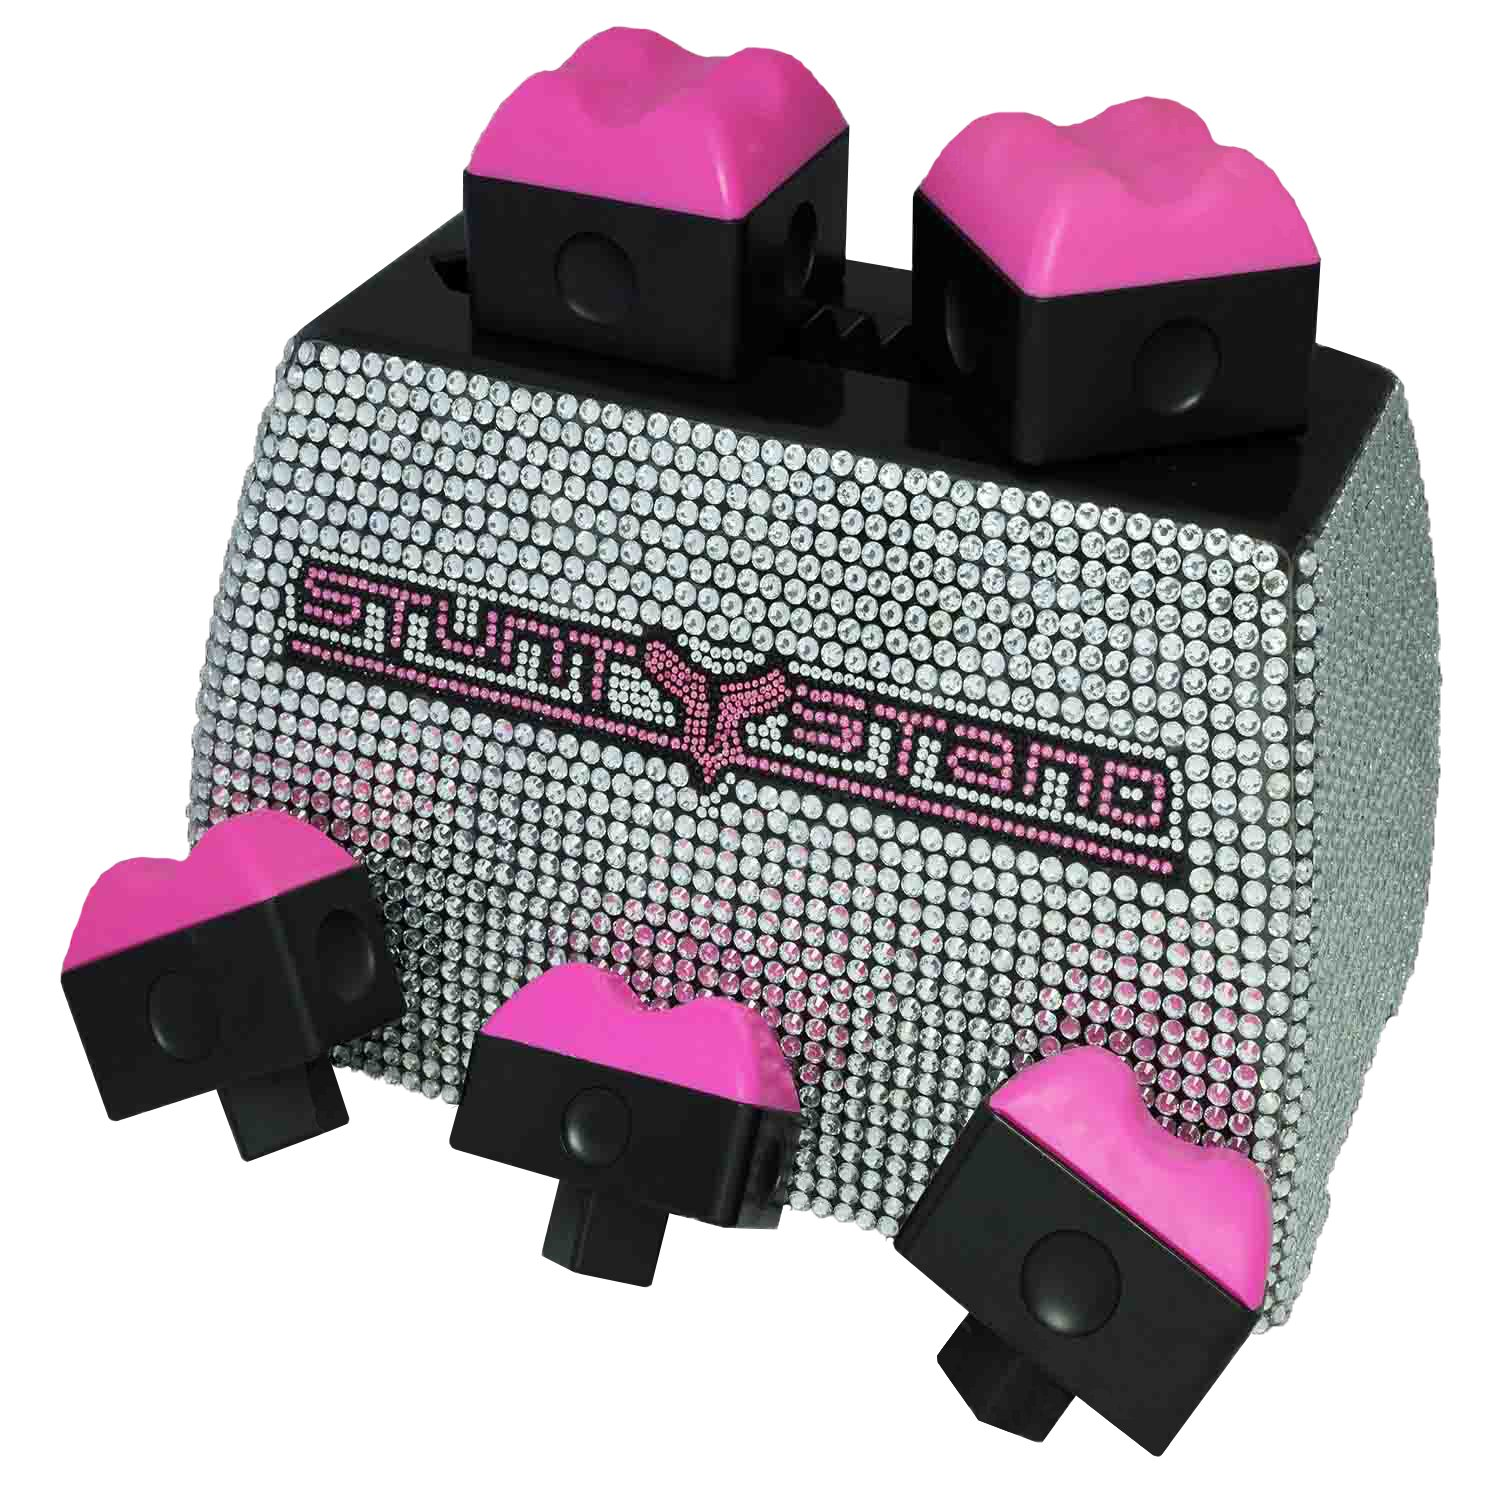 Cheerleading Stunt Stand Elite Edition Balance & Flexibility Training Device - Rhinestone w Pink Grips